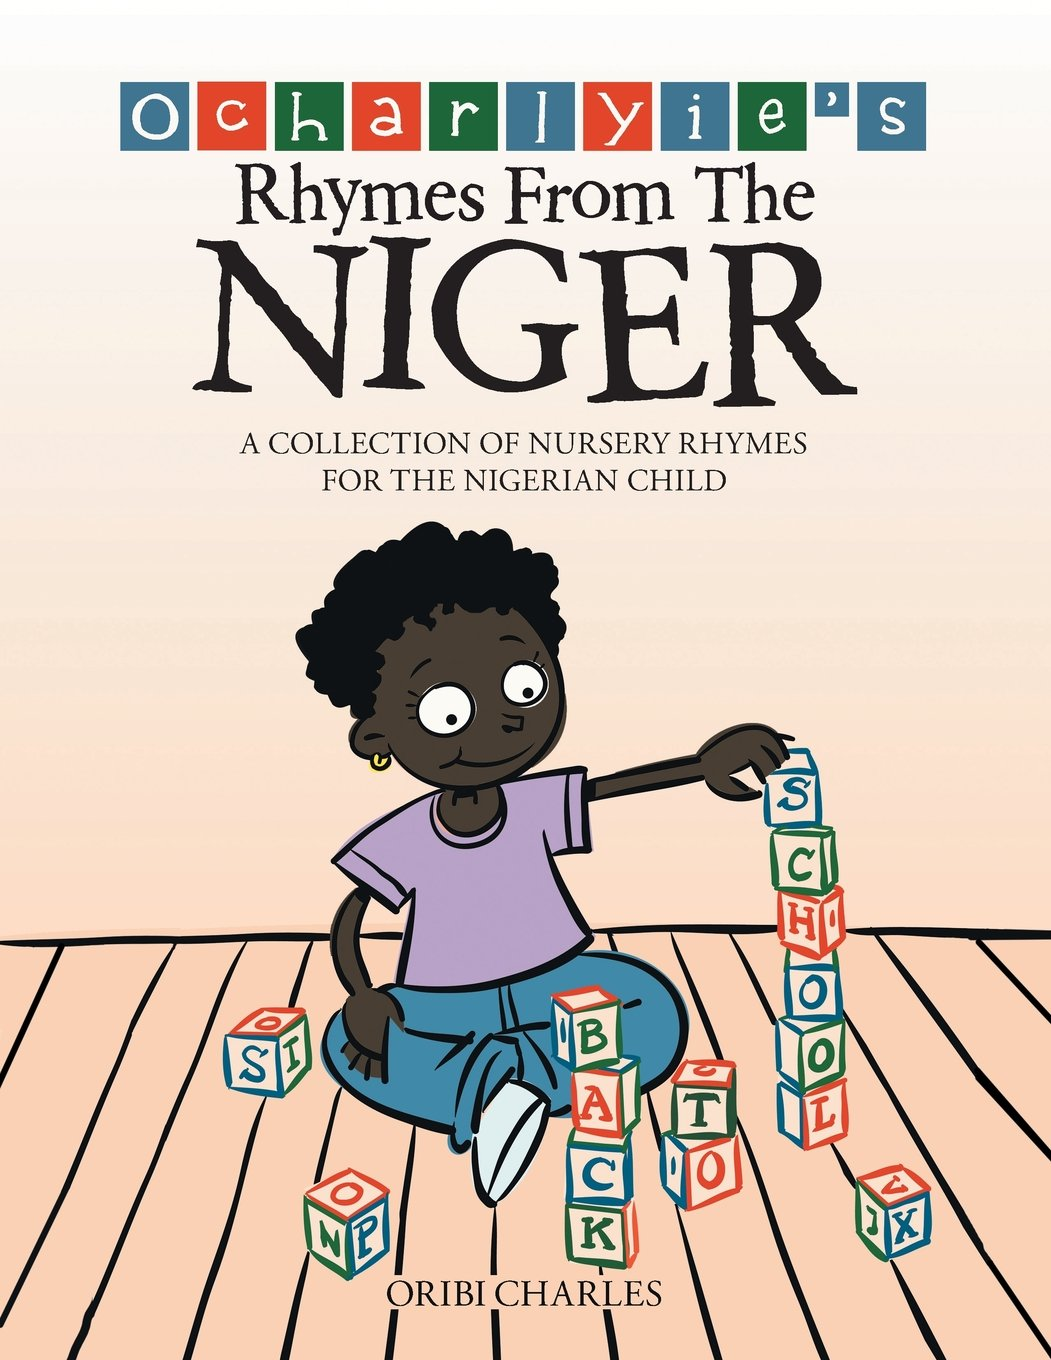 ocharlyie s rhymes from the niger a collection of nursery rhymes